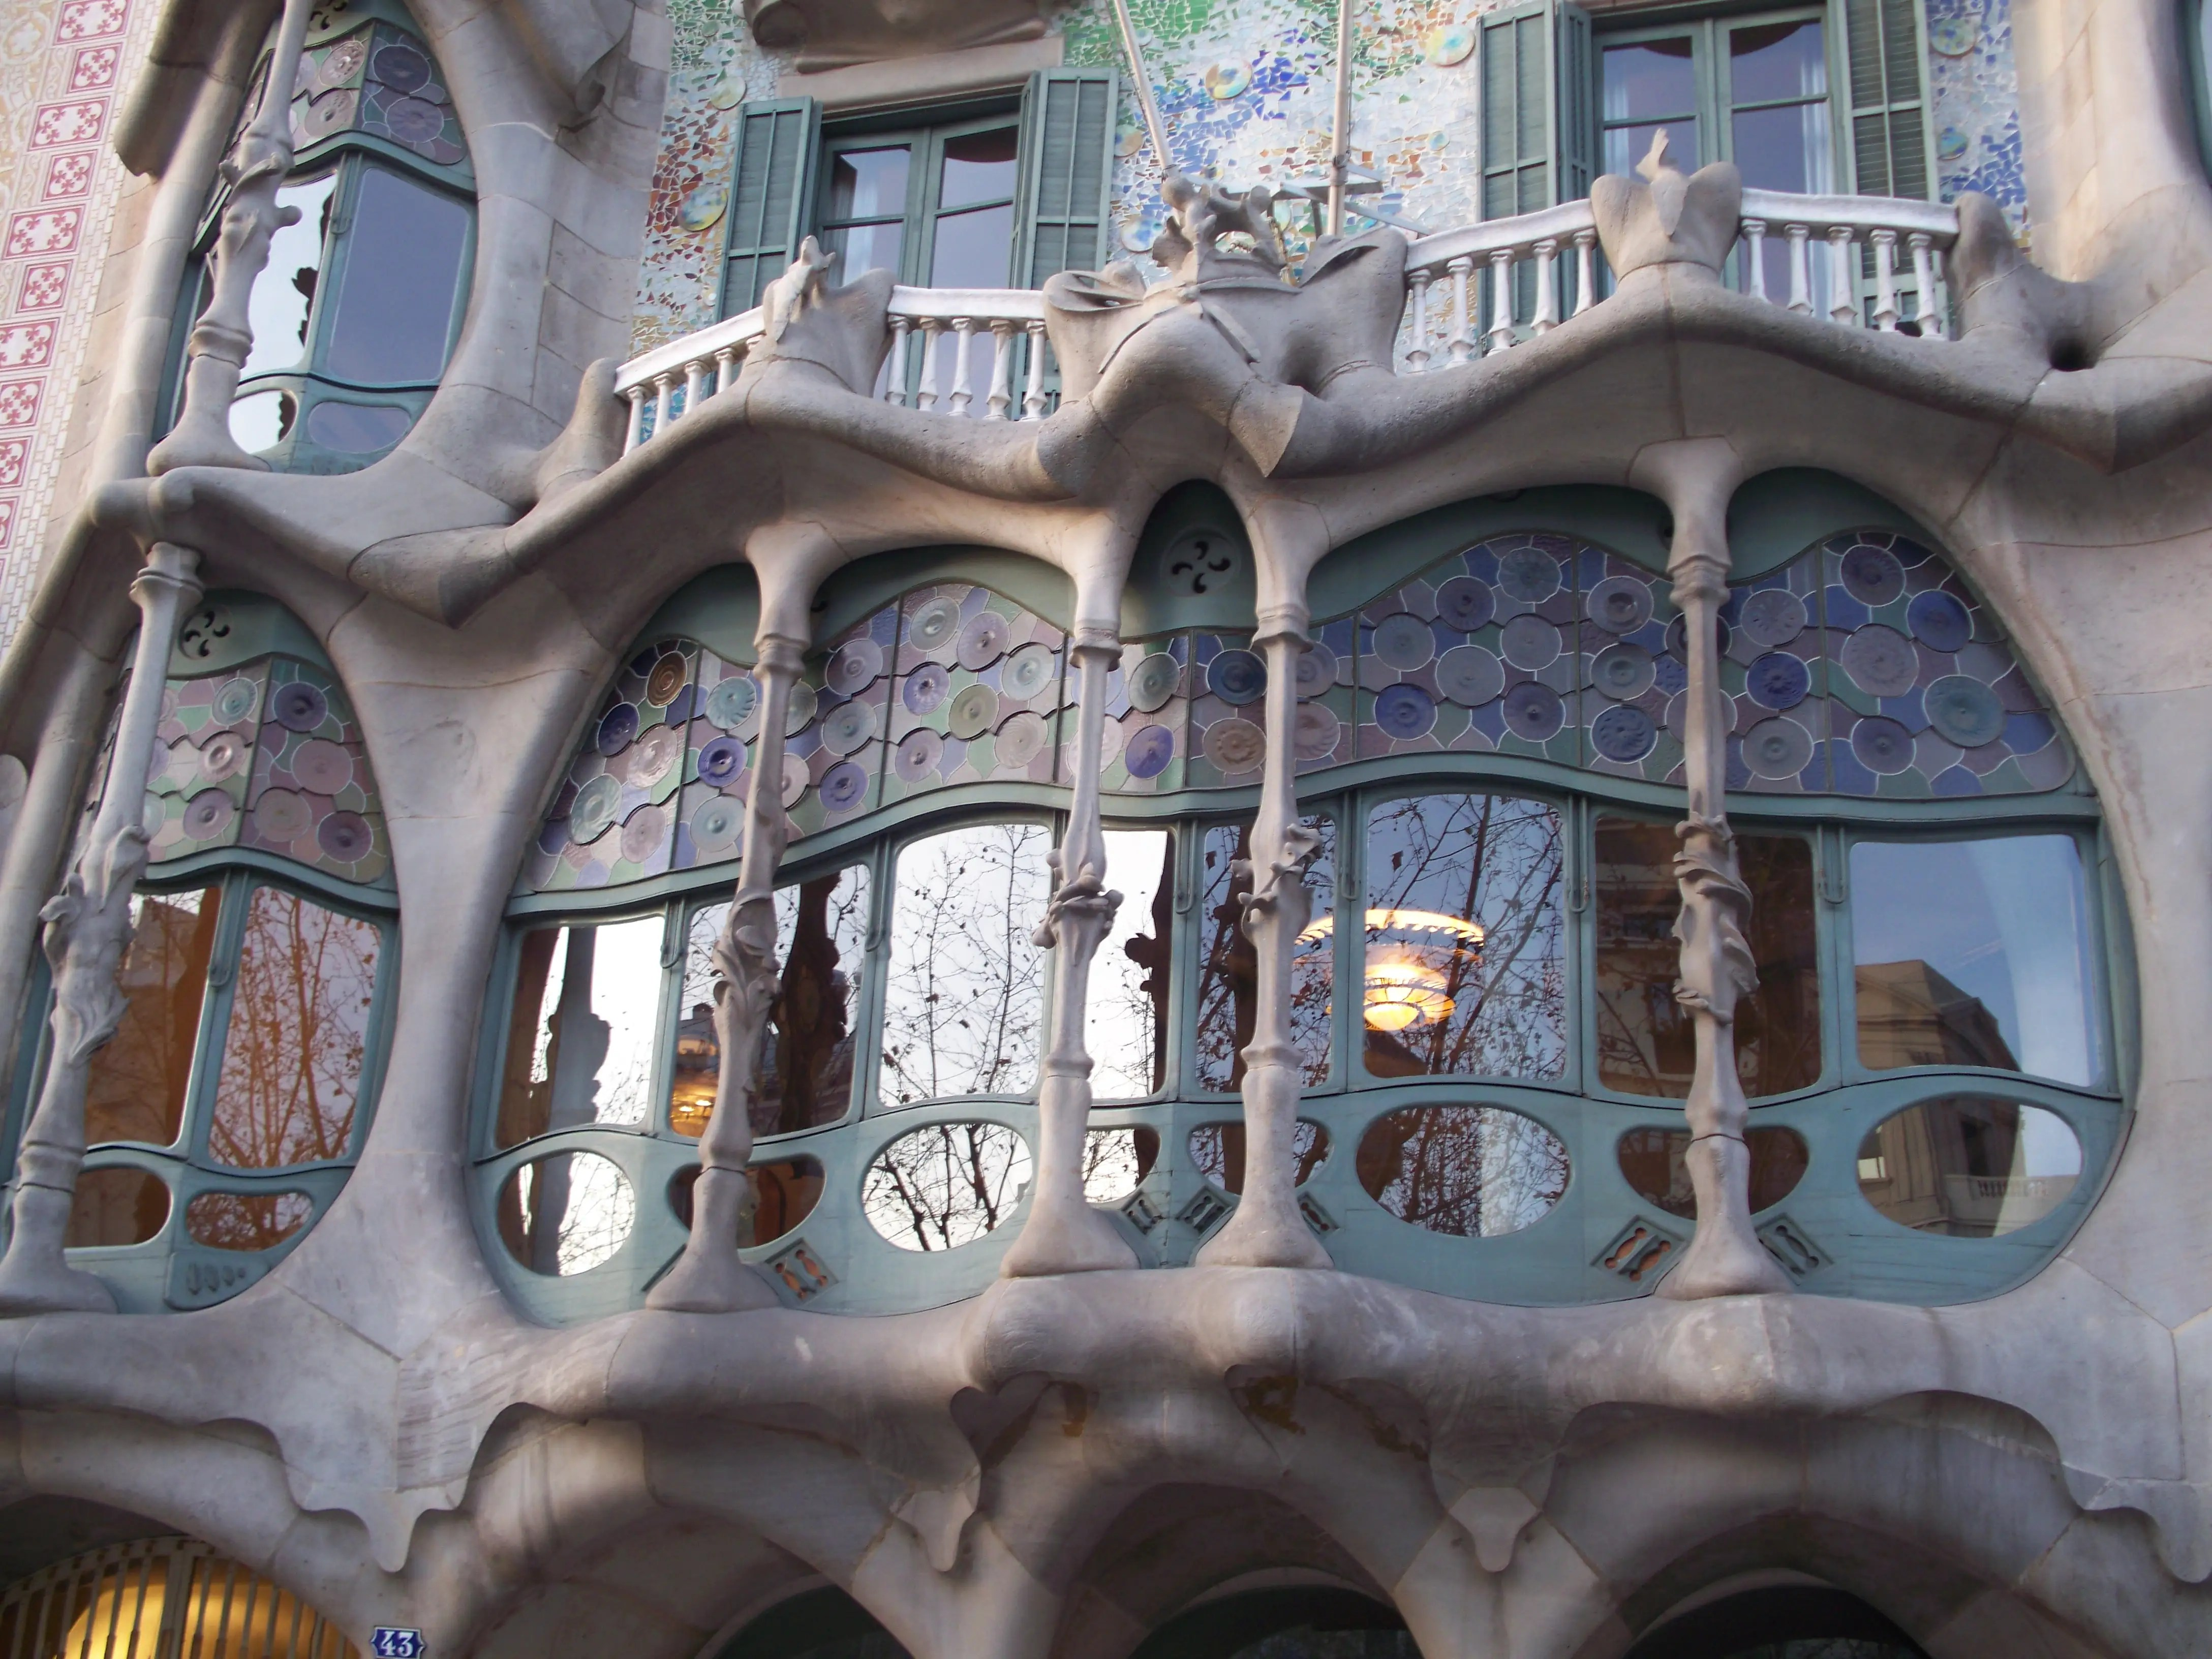 Gaudí restored the Casa Batlló (originally constructed in 1877) between 1904 and 1906. The facade is covered in mosaic tiles and feels skeletal.